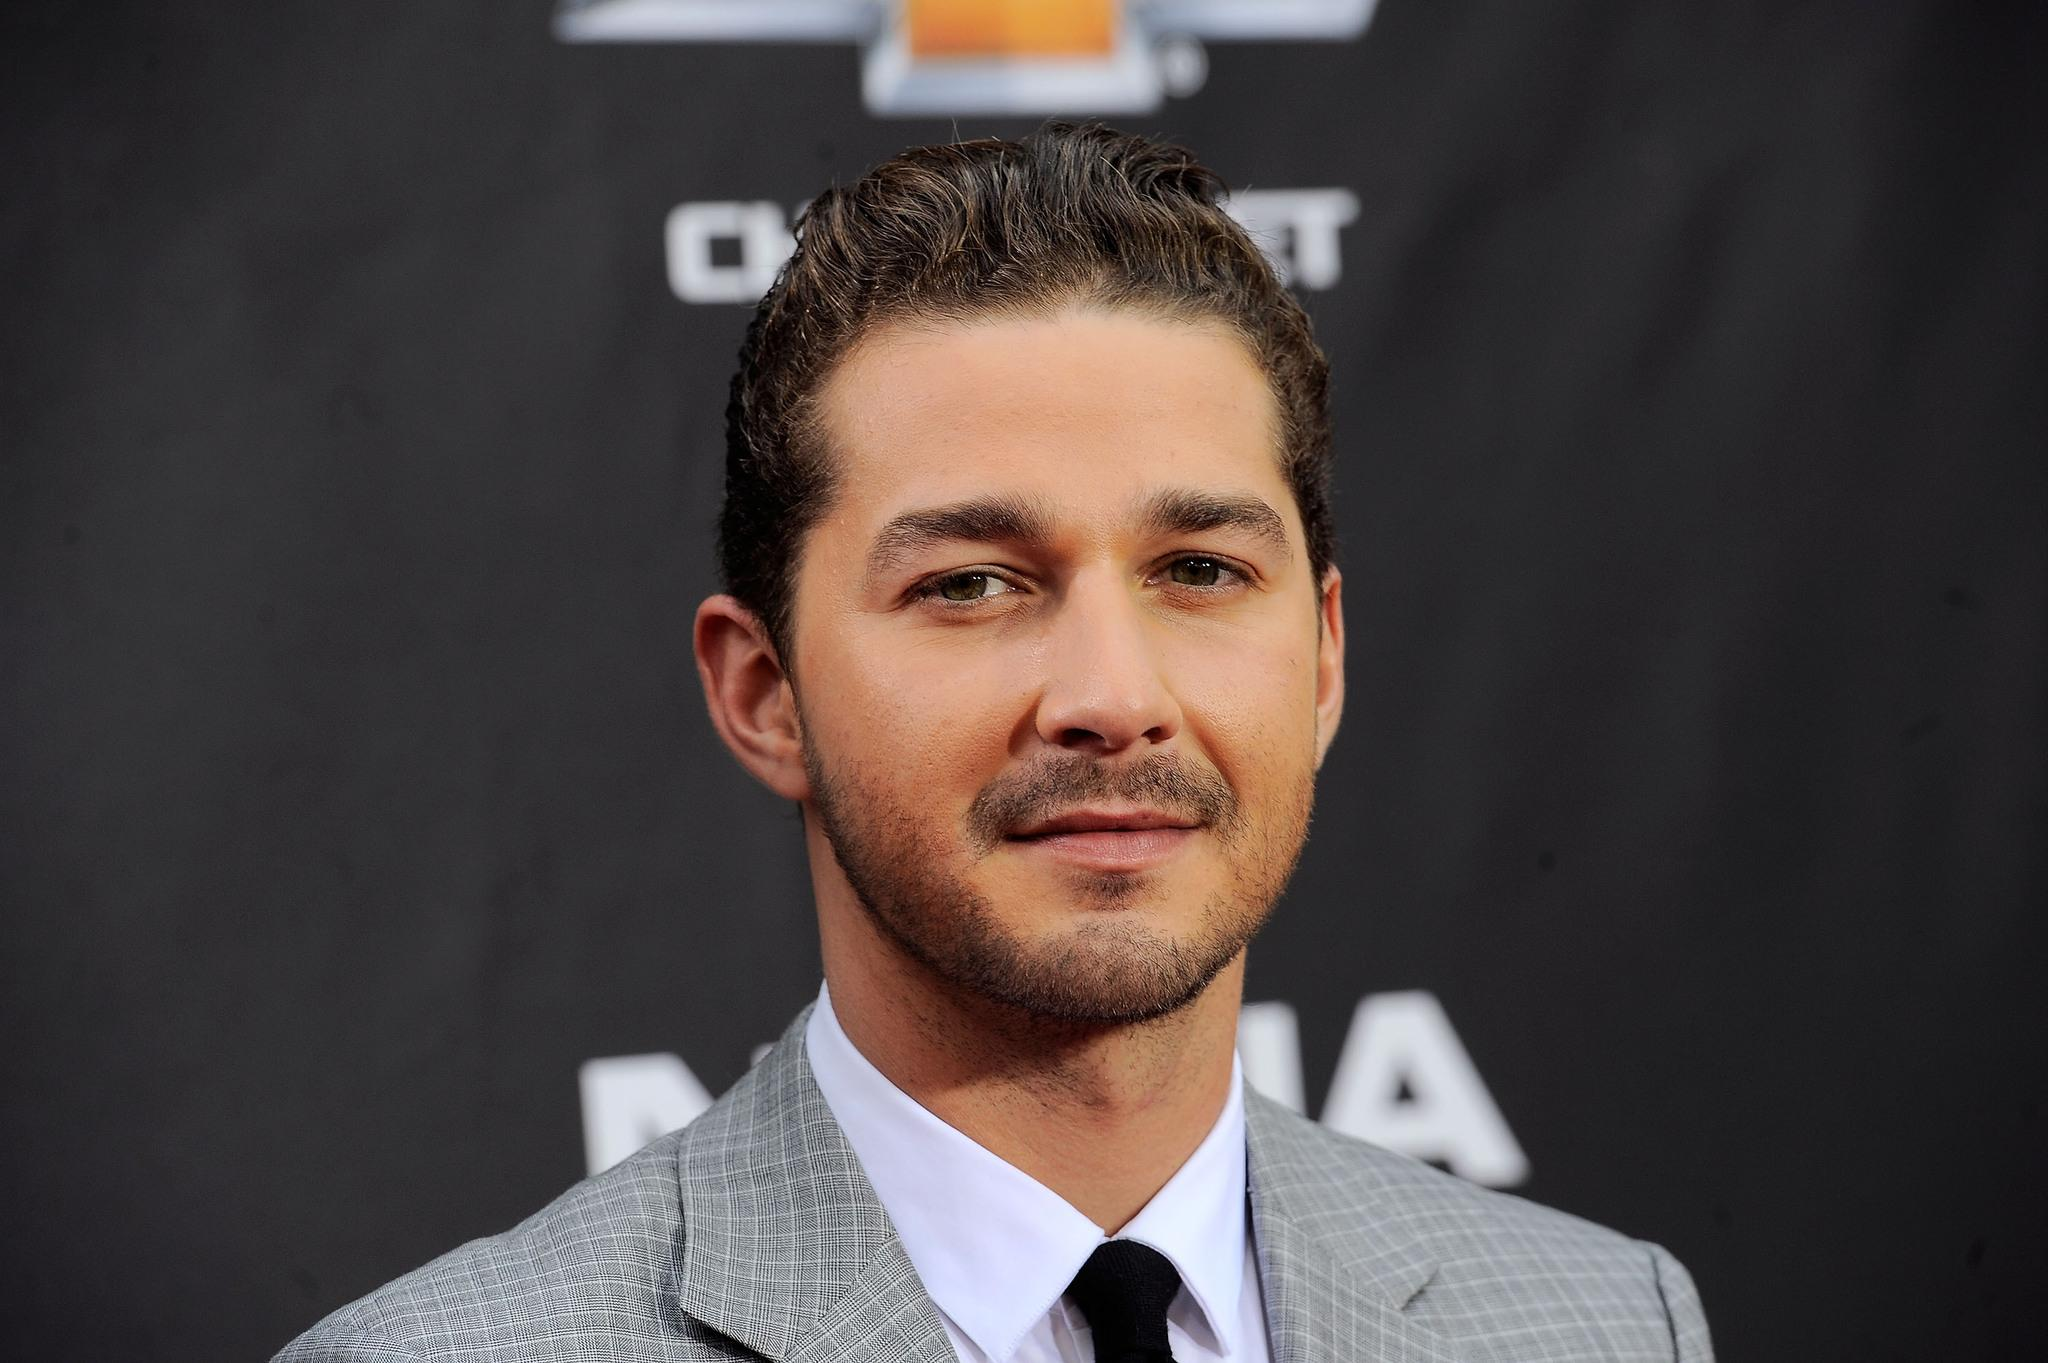 Shia Labeouf hd wallpaper Wallpaper